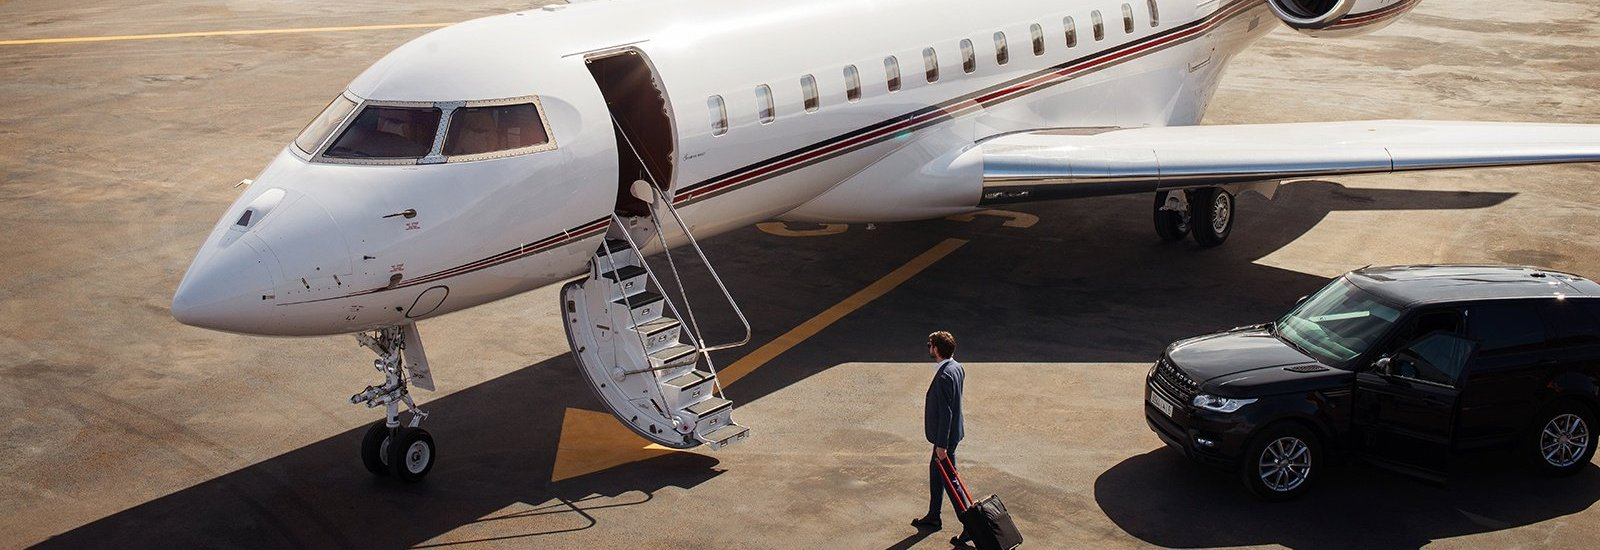 Flying High: Making the Most of a Private Jet - Christie's